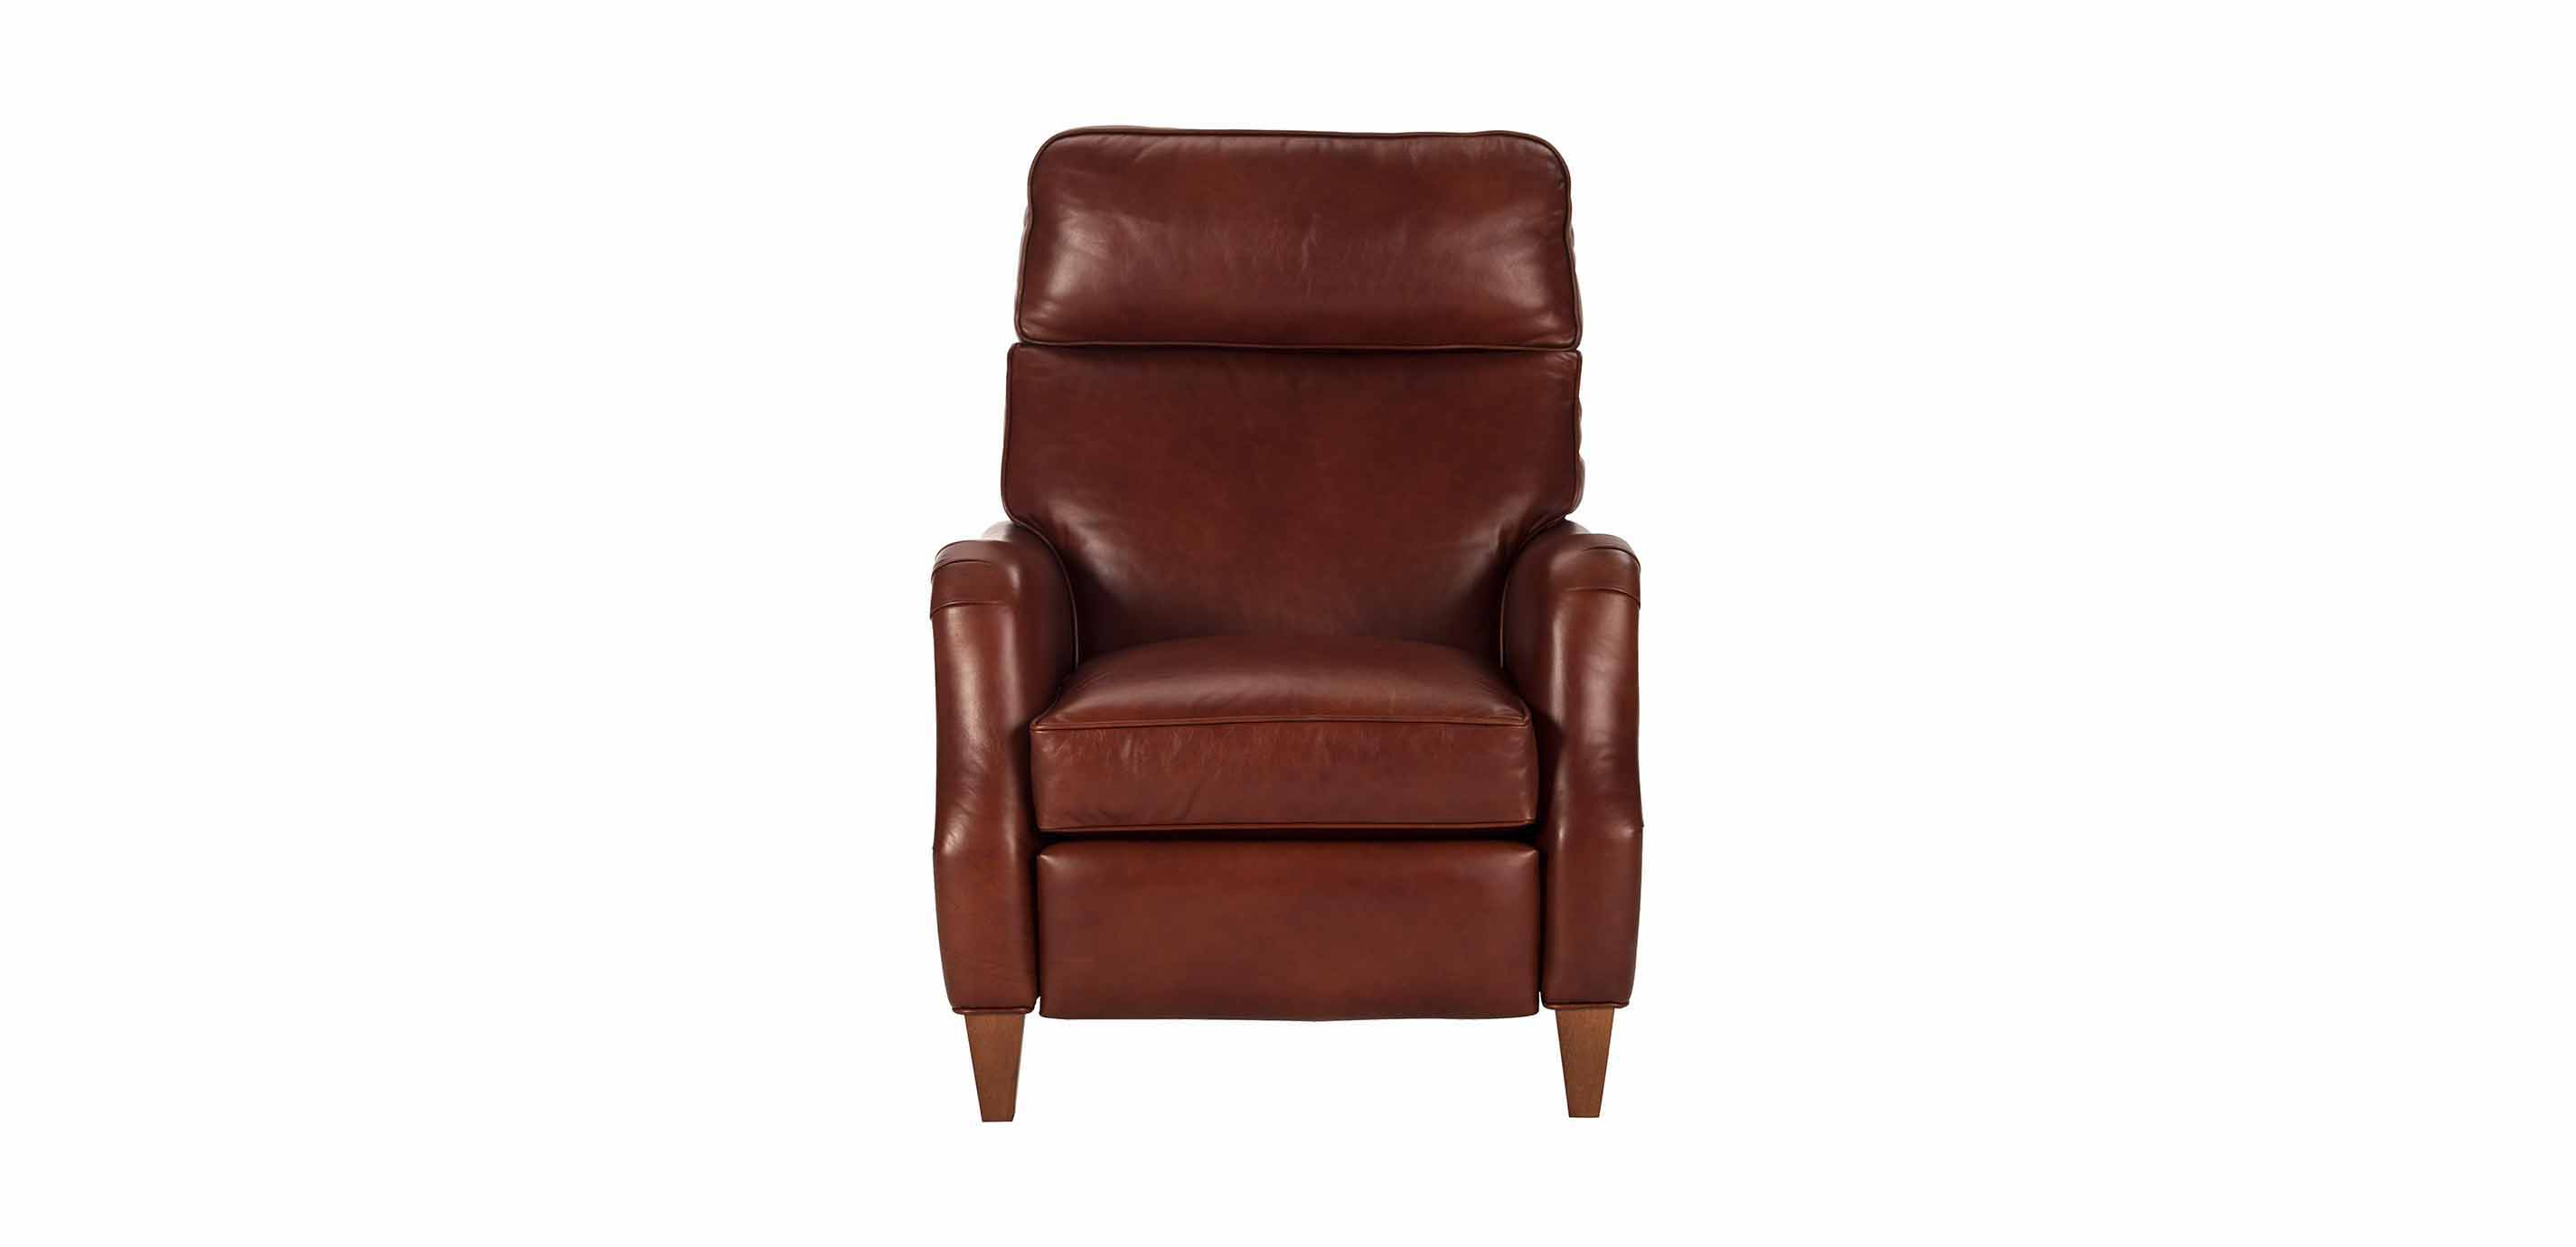 Aiden Leather Recliner Old English Saddle